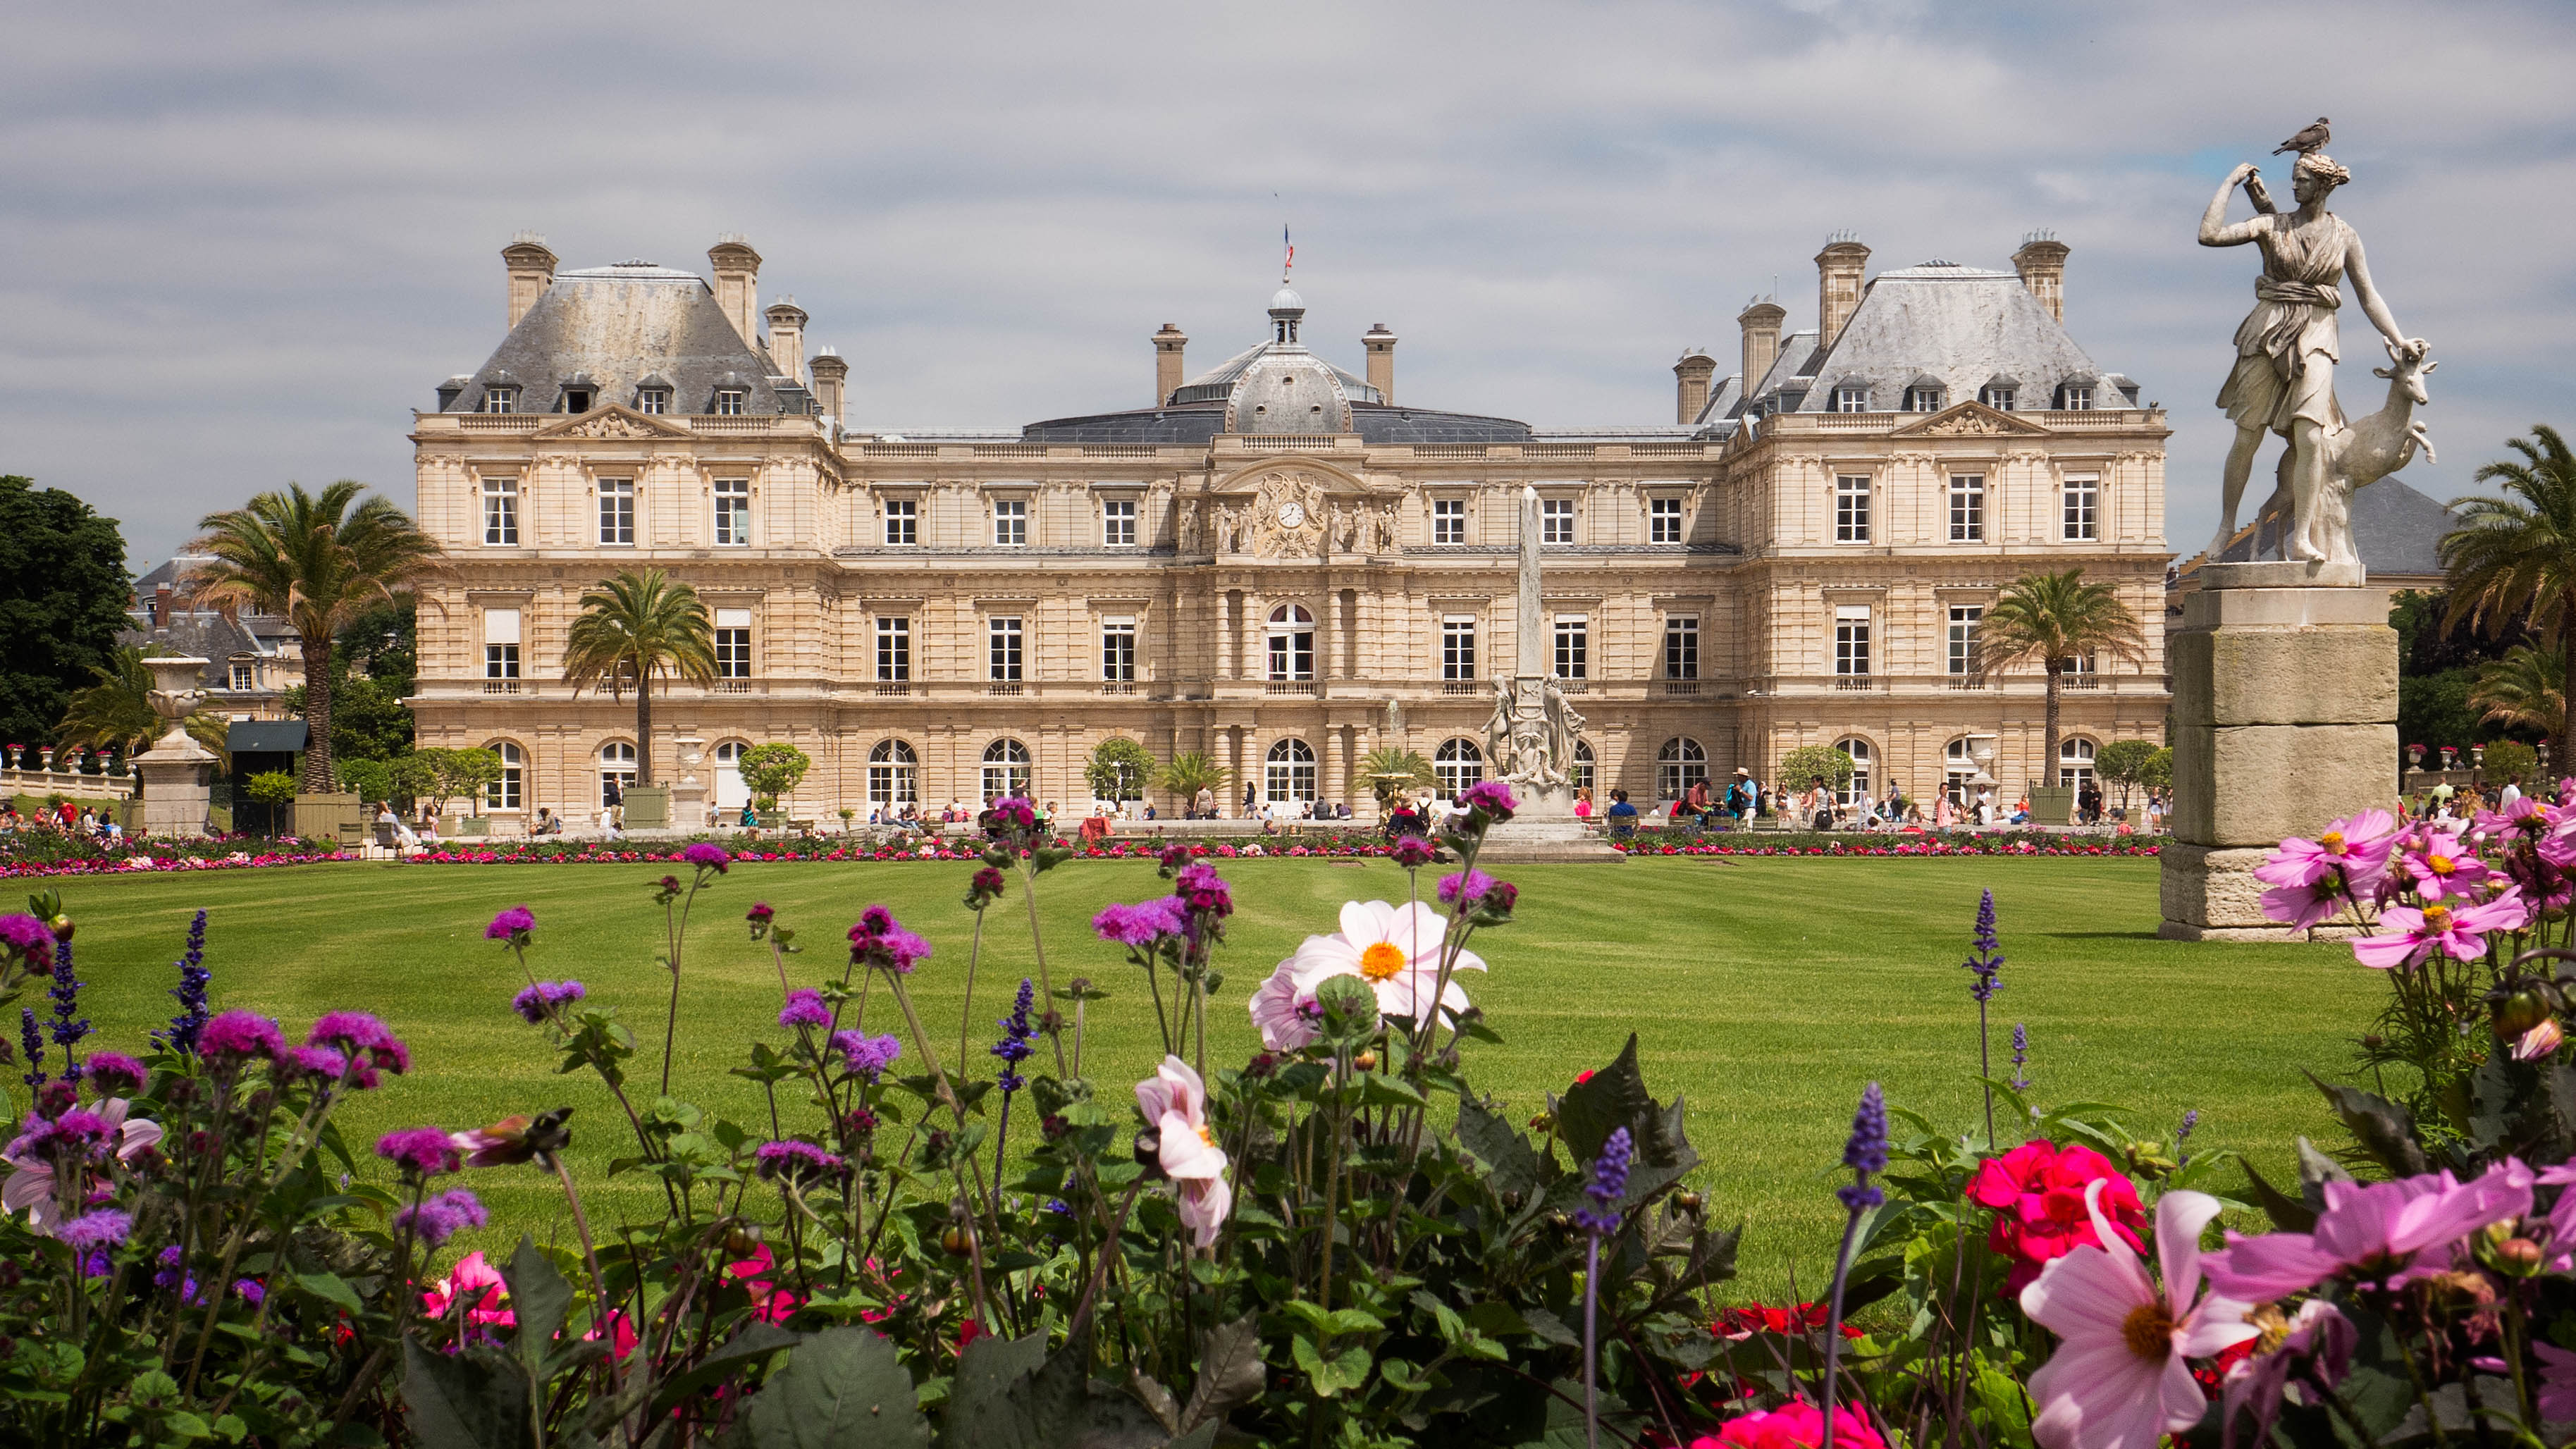 Luxembourg Palace, Paris France, 2013, Landscape, Statue, Senate, HQ Photo